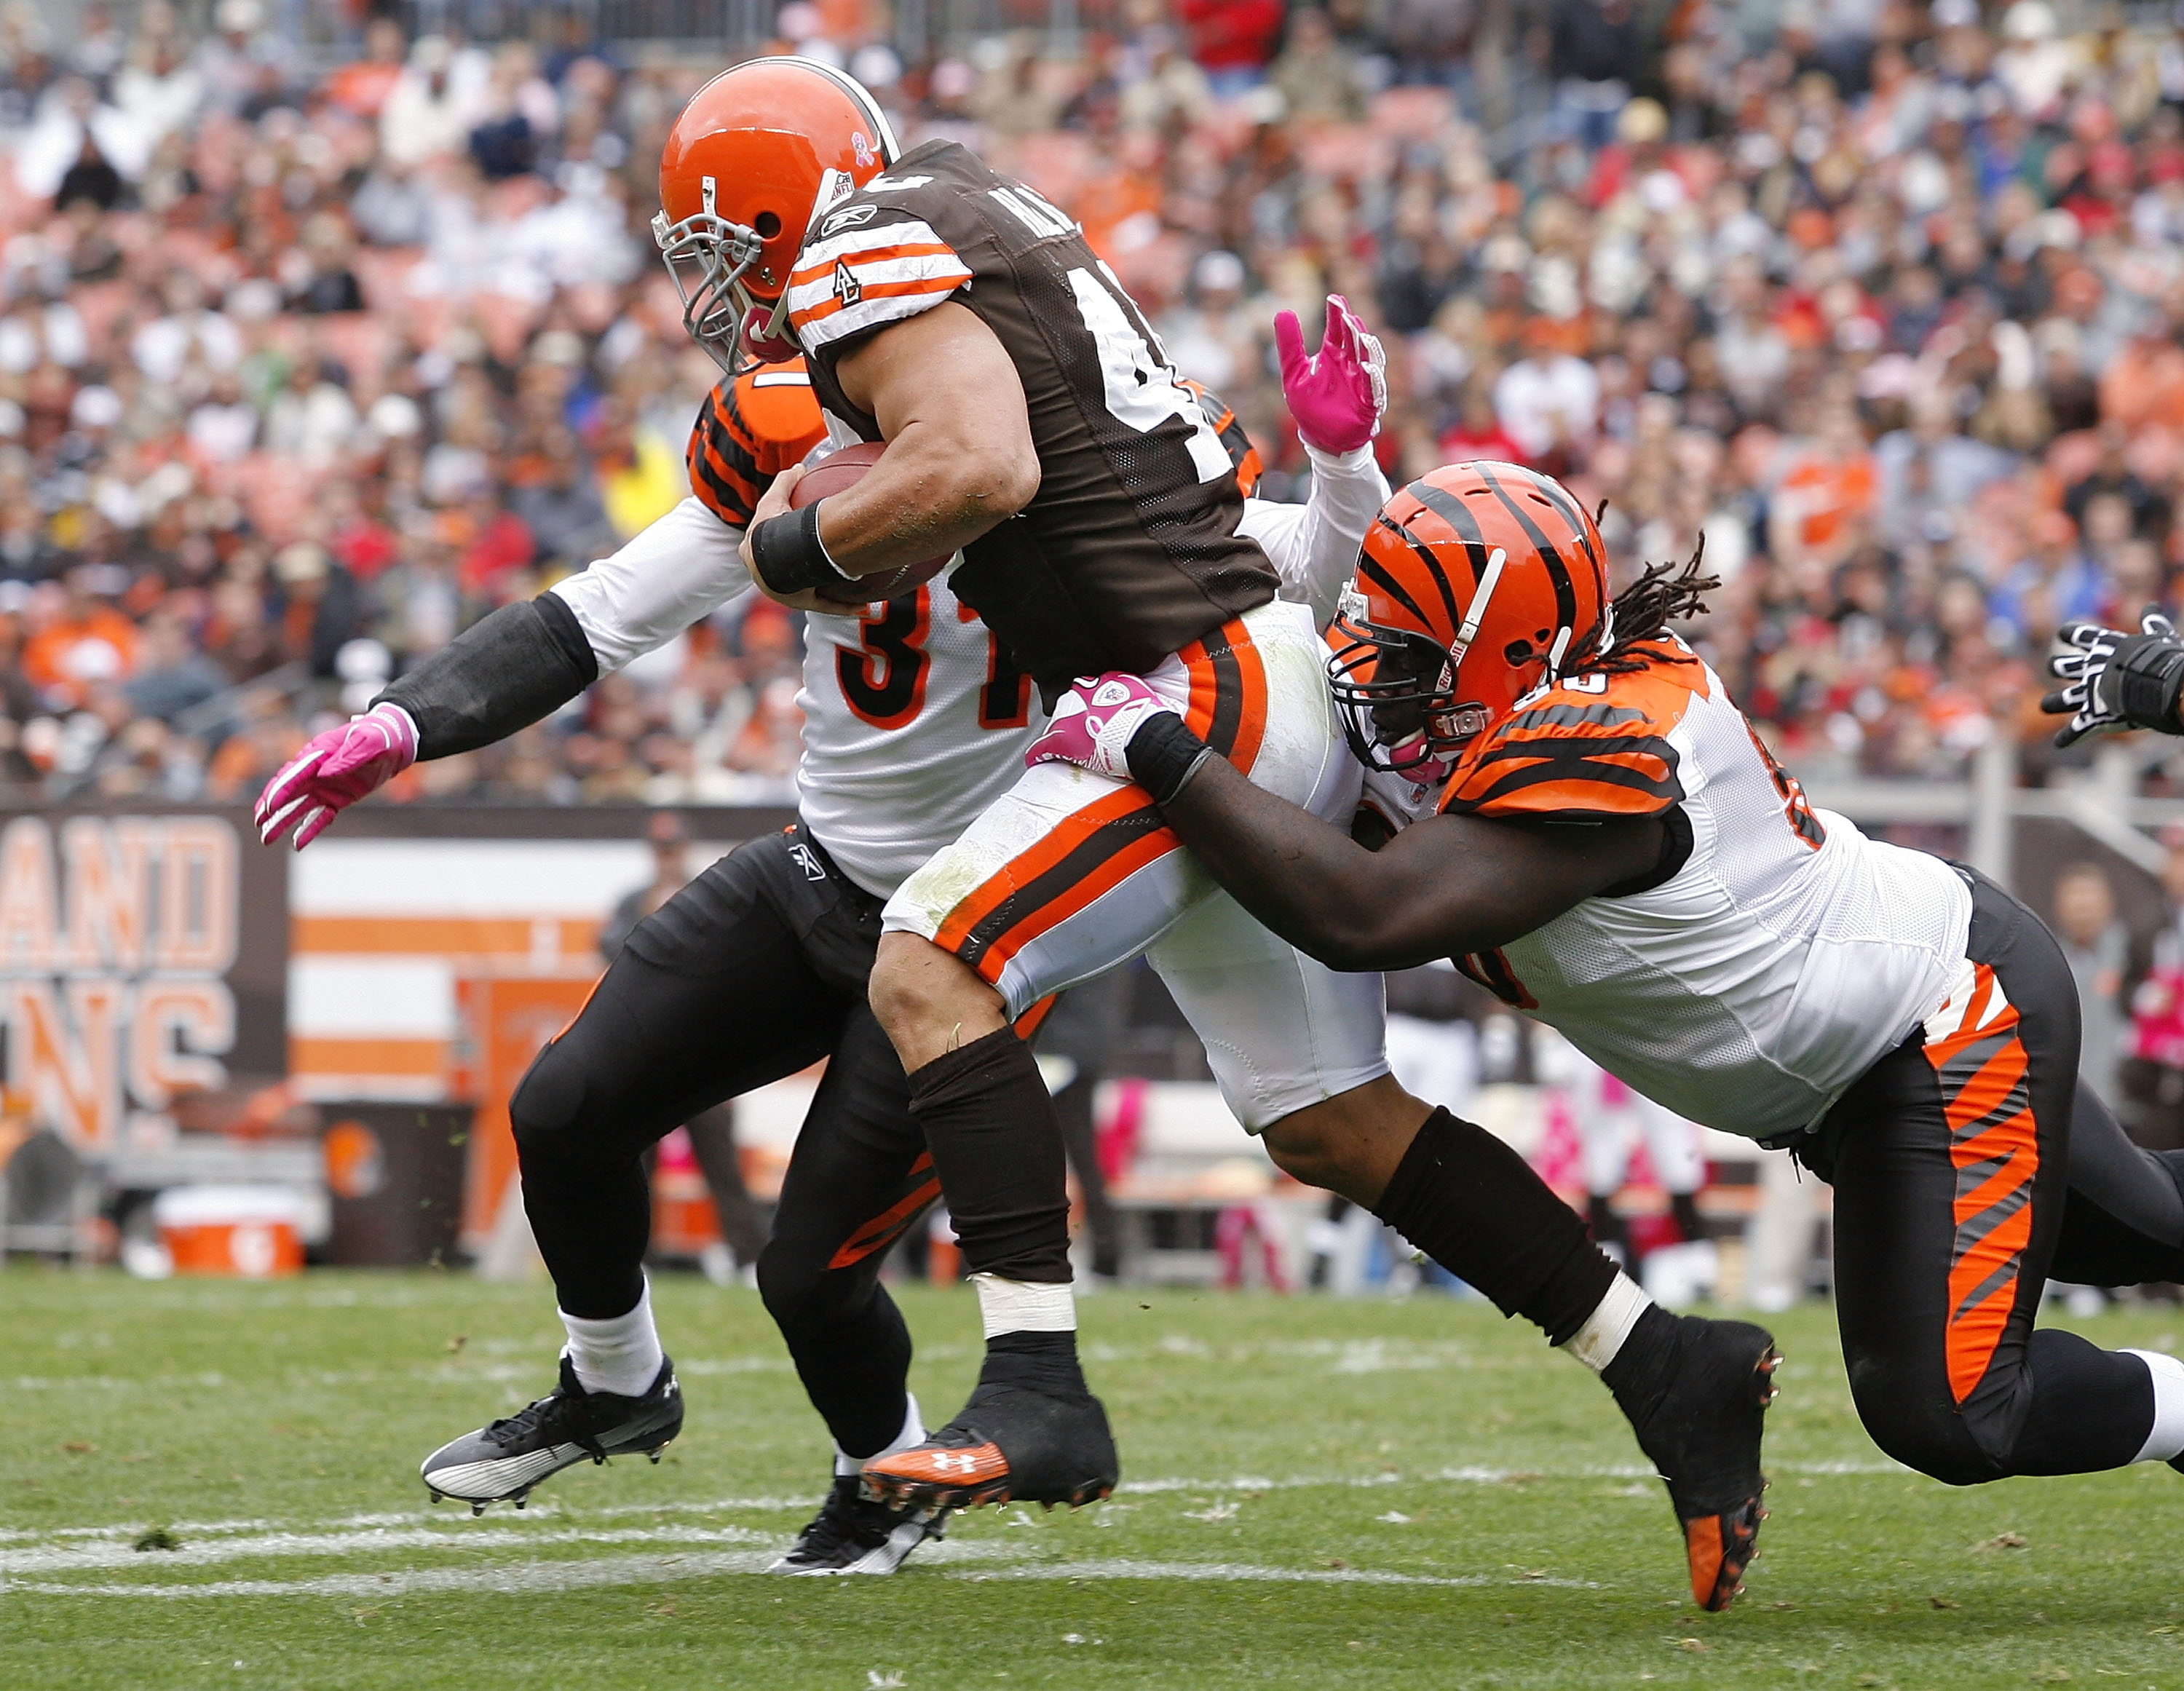 CLEVELAND - OCTOBER 03:  Running back Peyton Hillis #40 of the Cleveland Browns is hit by defenders Roy Williams #31 and Pat Sims #90 of the Cincinnati Bengals at Cleveland Browns Stadium on October 3, 2010 in Cleveland, Ohio.  (Photo by Matt Sullivan/Get